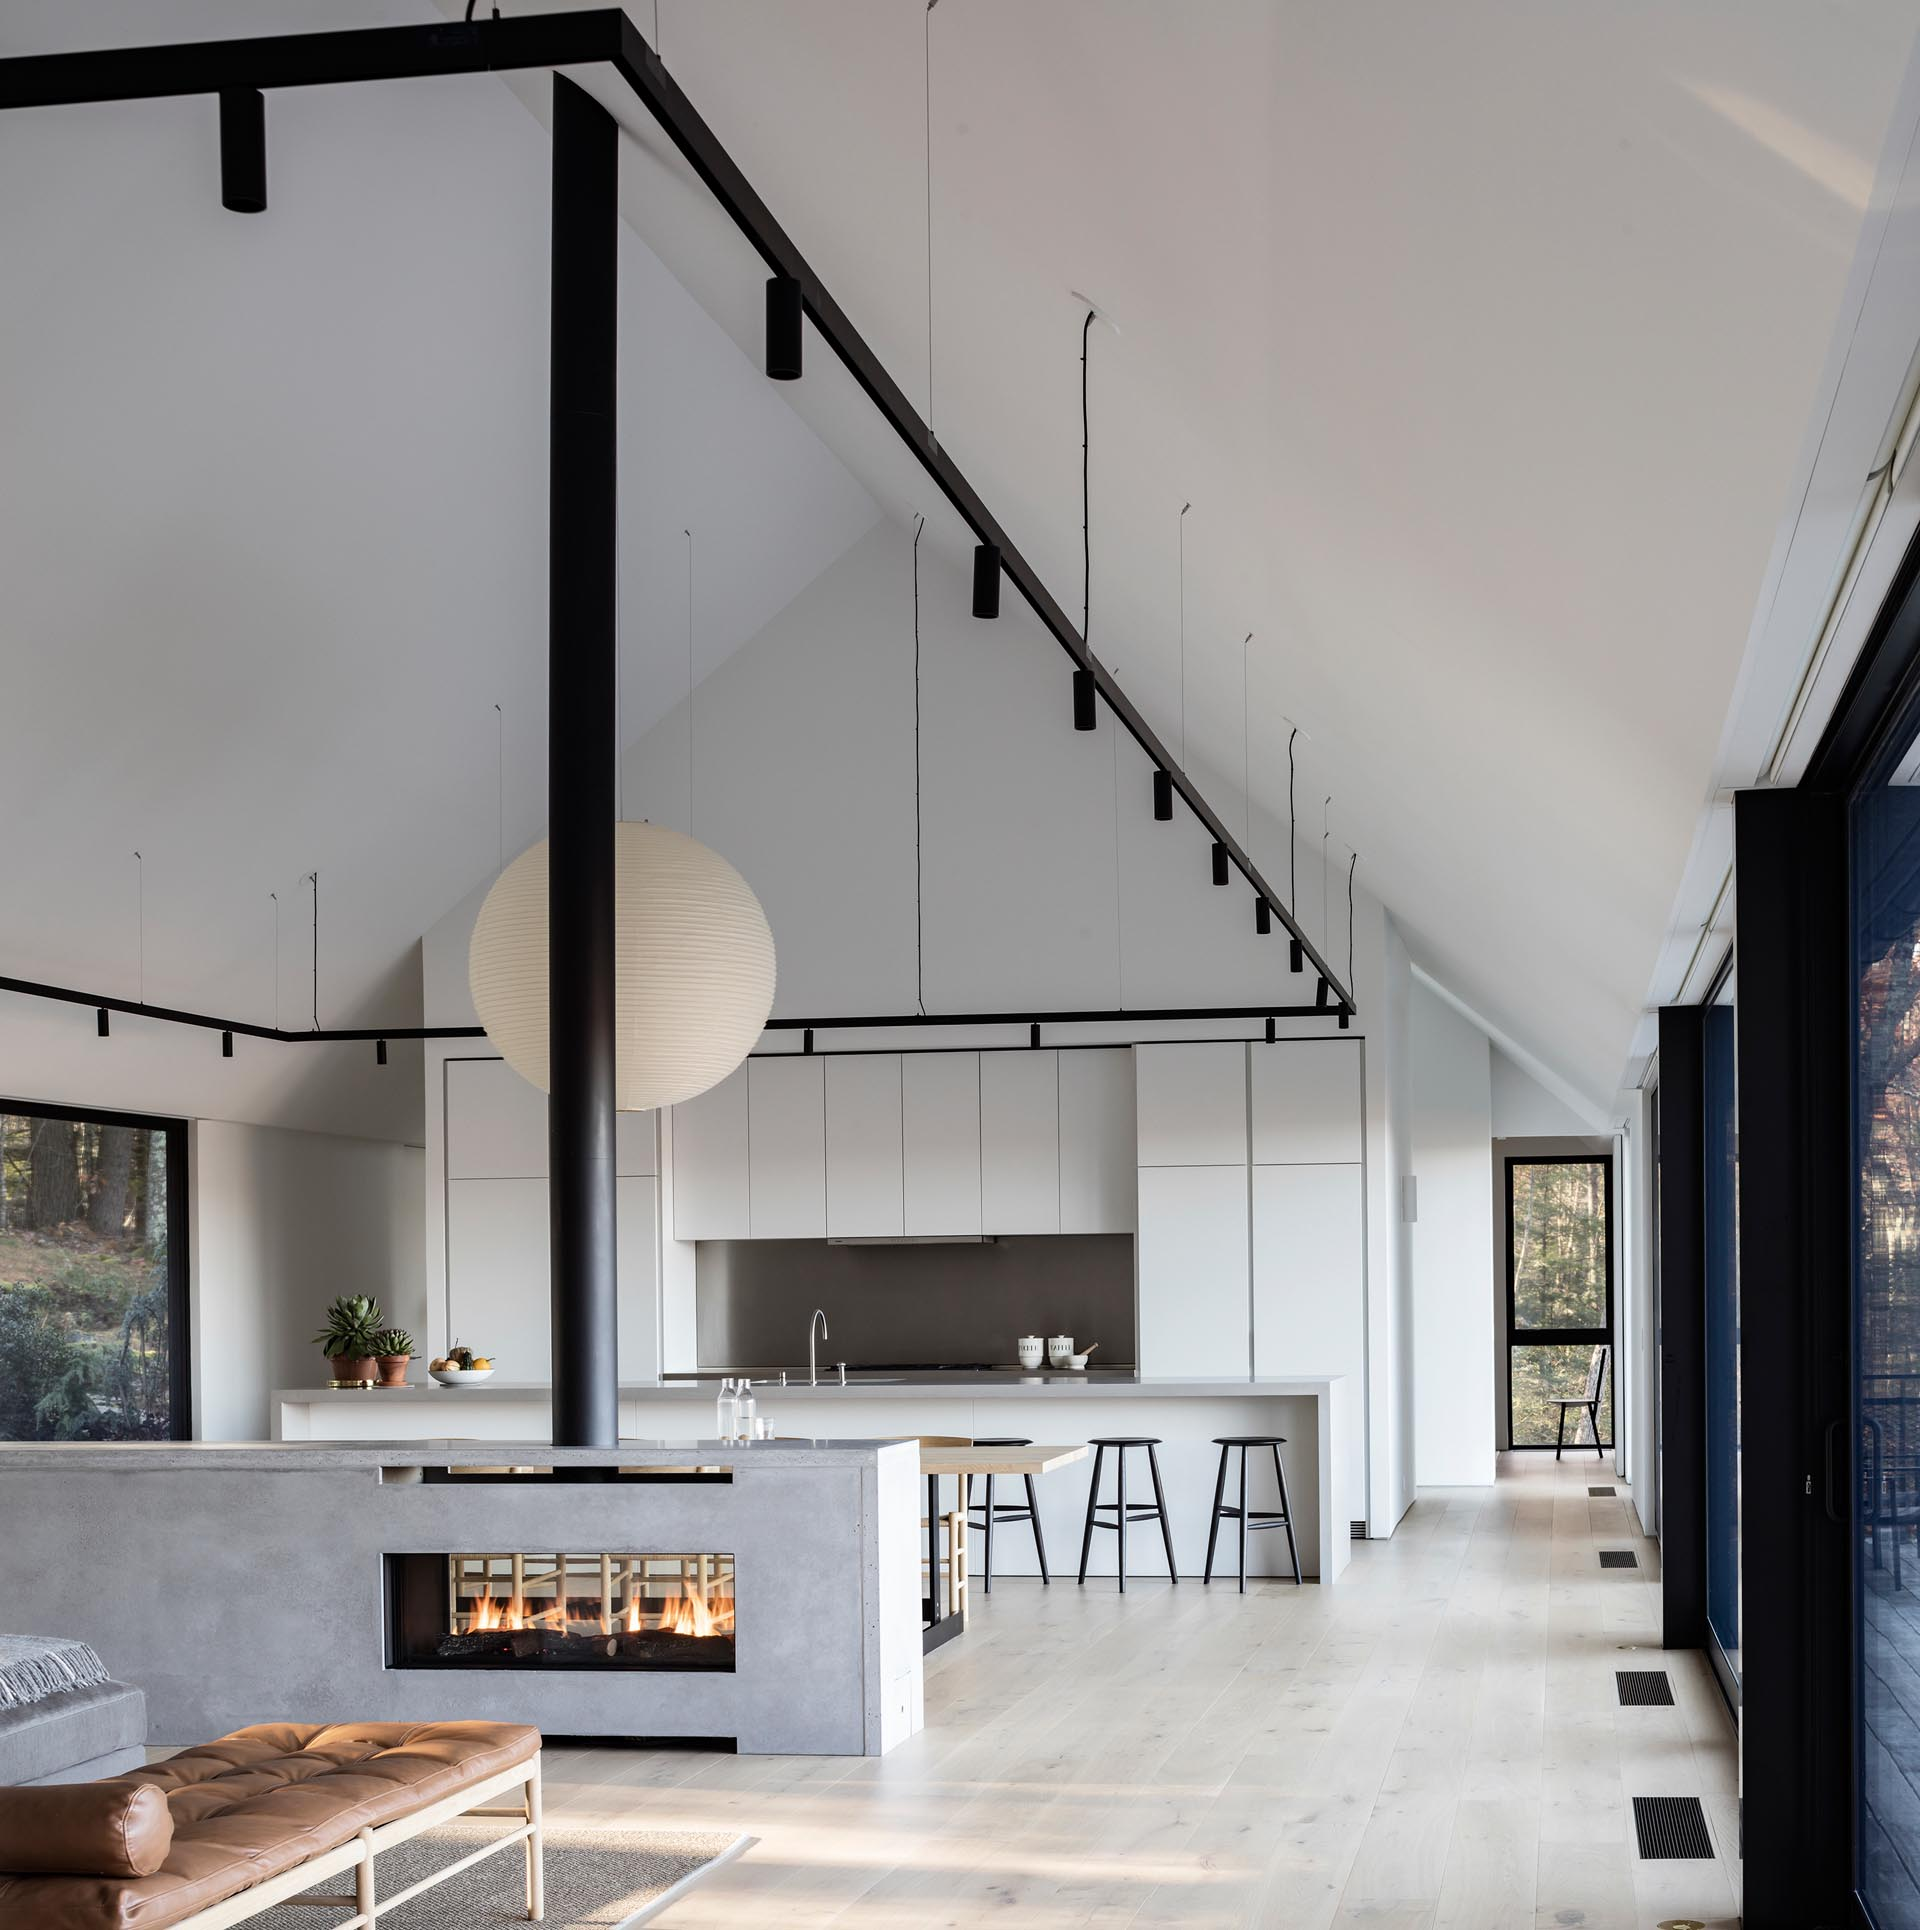 A modern house interior with a see-through fireplace, a minimalist white kitchen, and black accents.